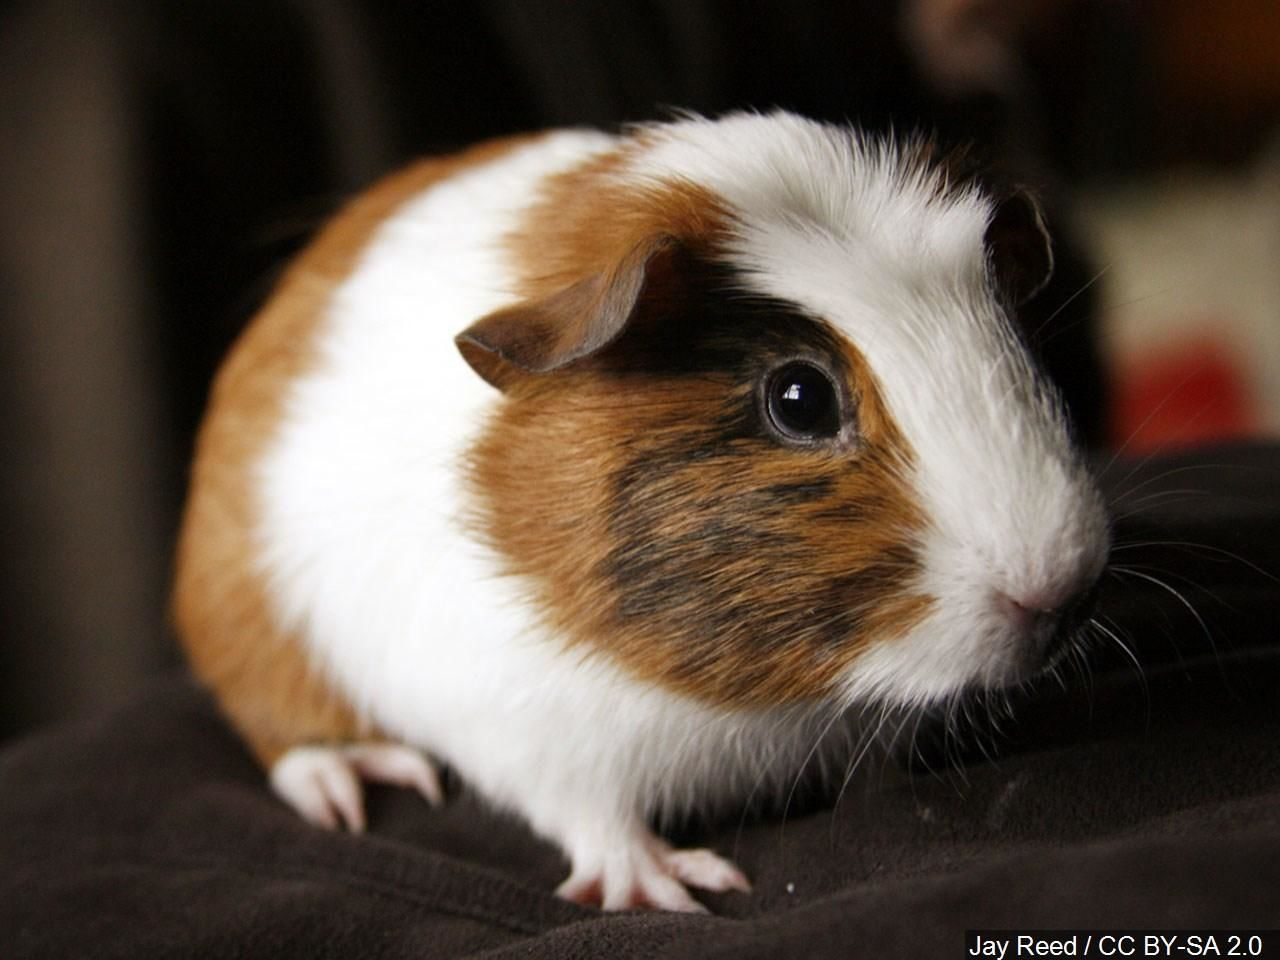 A pet show owner tried to stop two women from stealing guinea pigs when one of the suspects lobbed one of the animals at him during their escape. (Photo:{ }Jay Reed / CC BY-SA 2.0 via MGN)